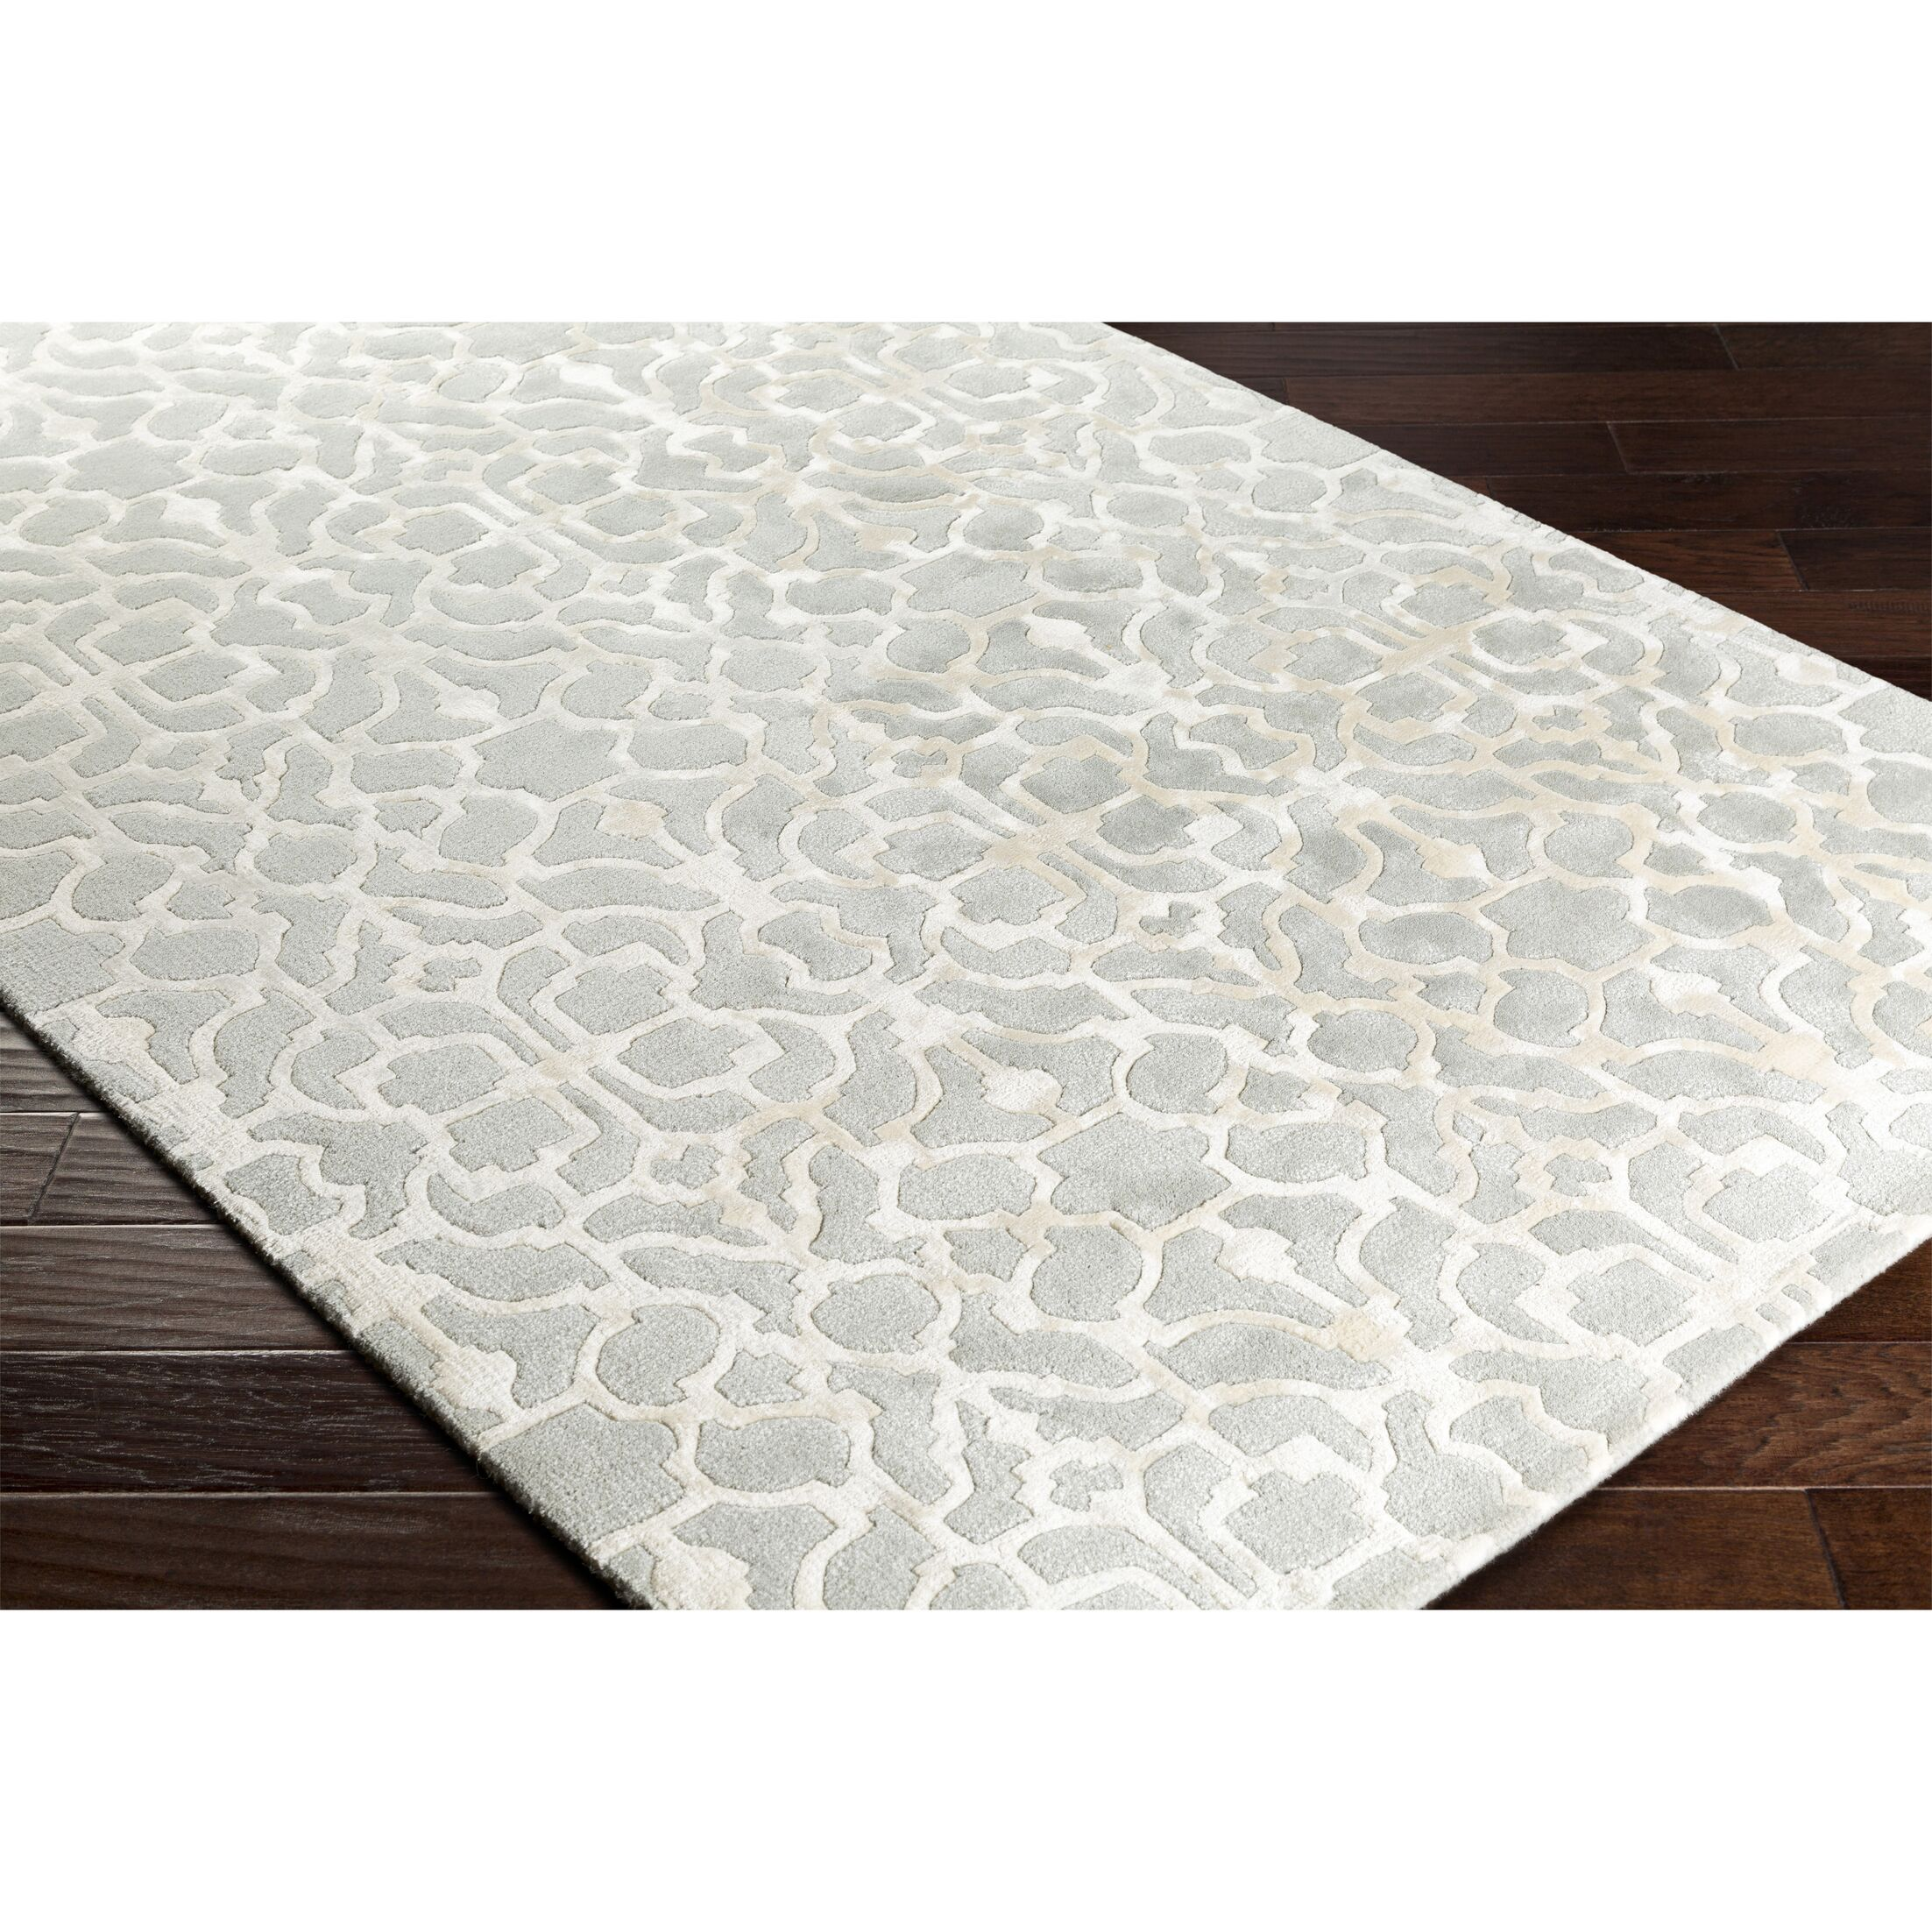 Silvera Hand-Tufted Gray/Neutral Area Rug Rug Size: Rectangle 5' x 7'6